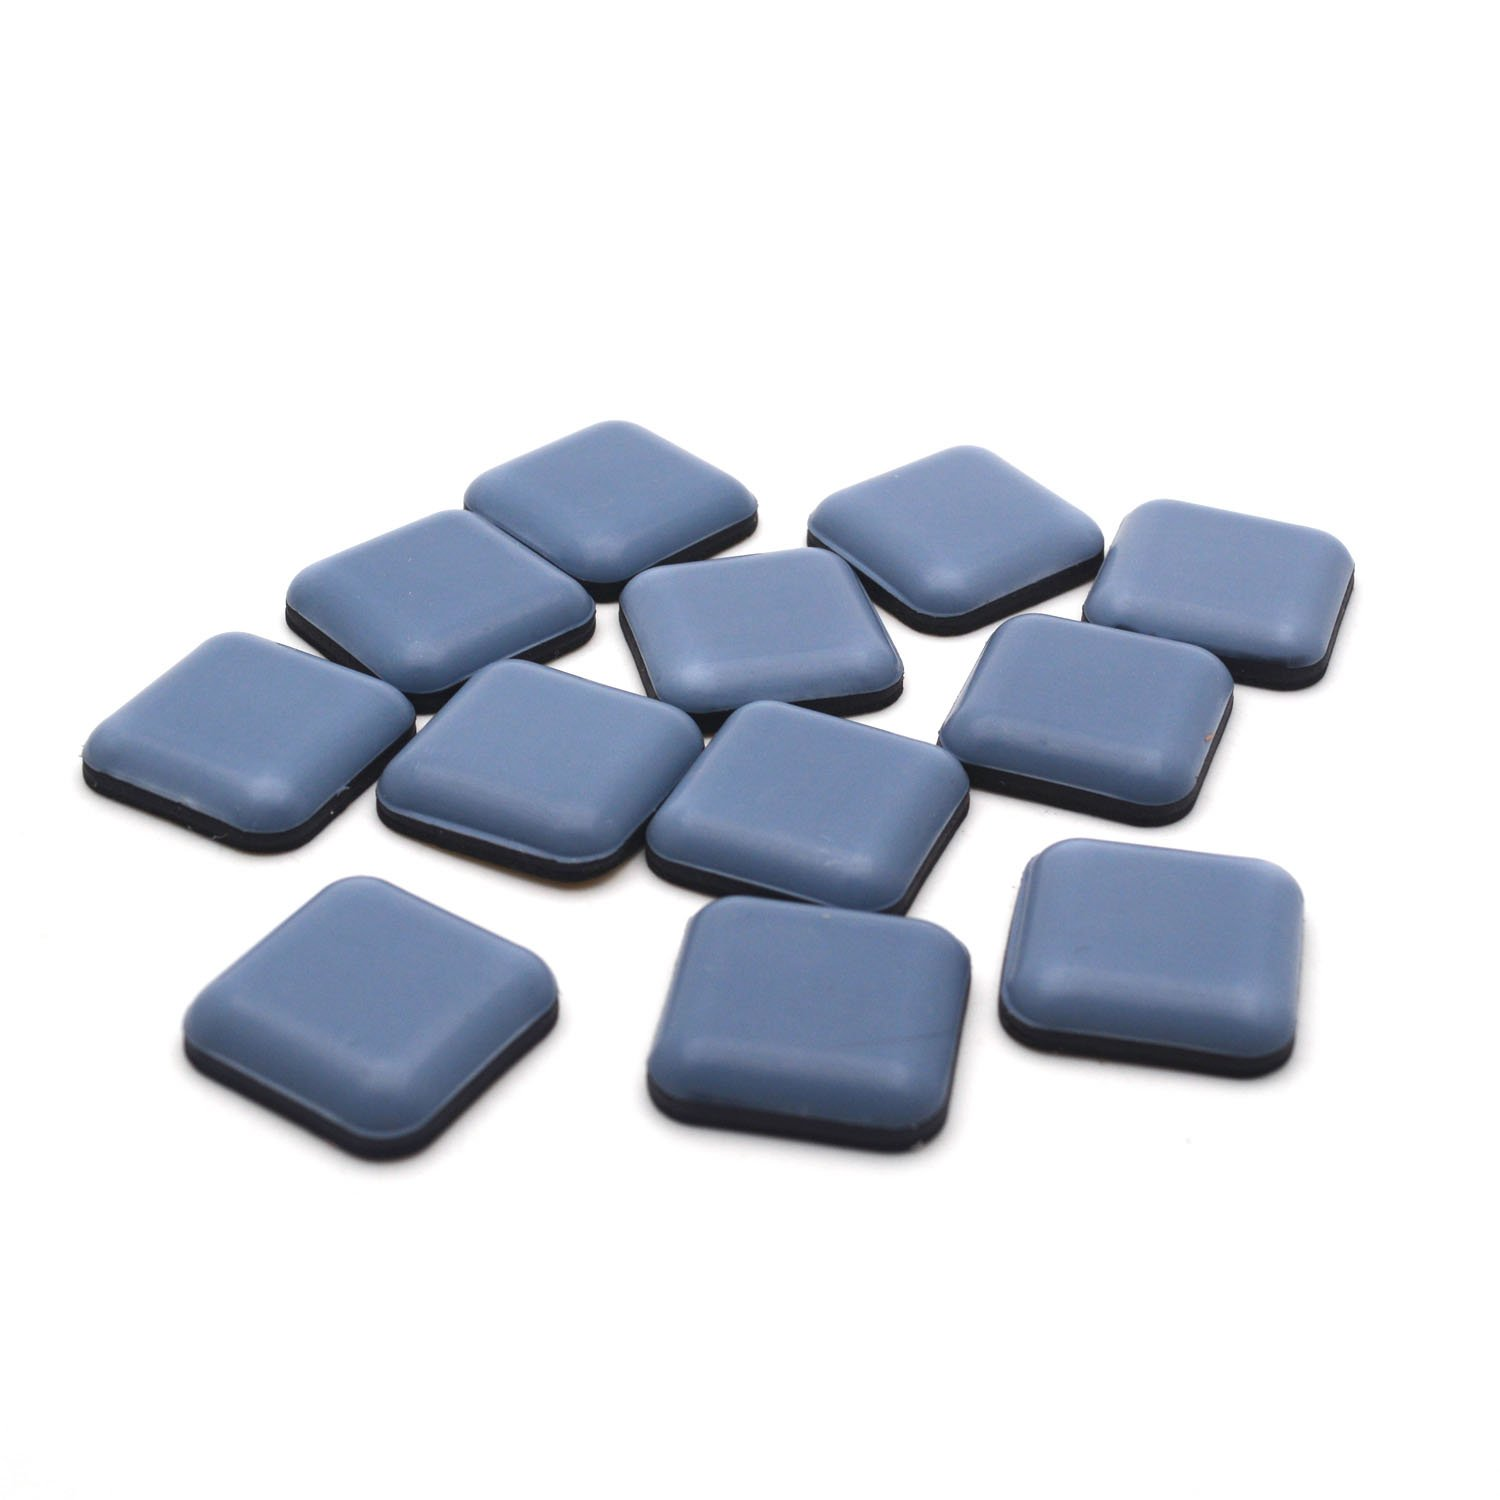 """Antrader 12Pack Furniture Gliders 1"""" x 1"""" Square Carpet Flooring Coaster Magic Mover Moving Sliders Pads Navy"""